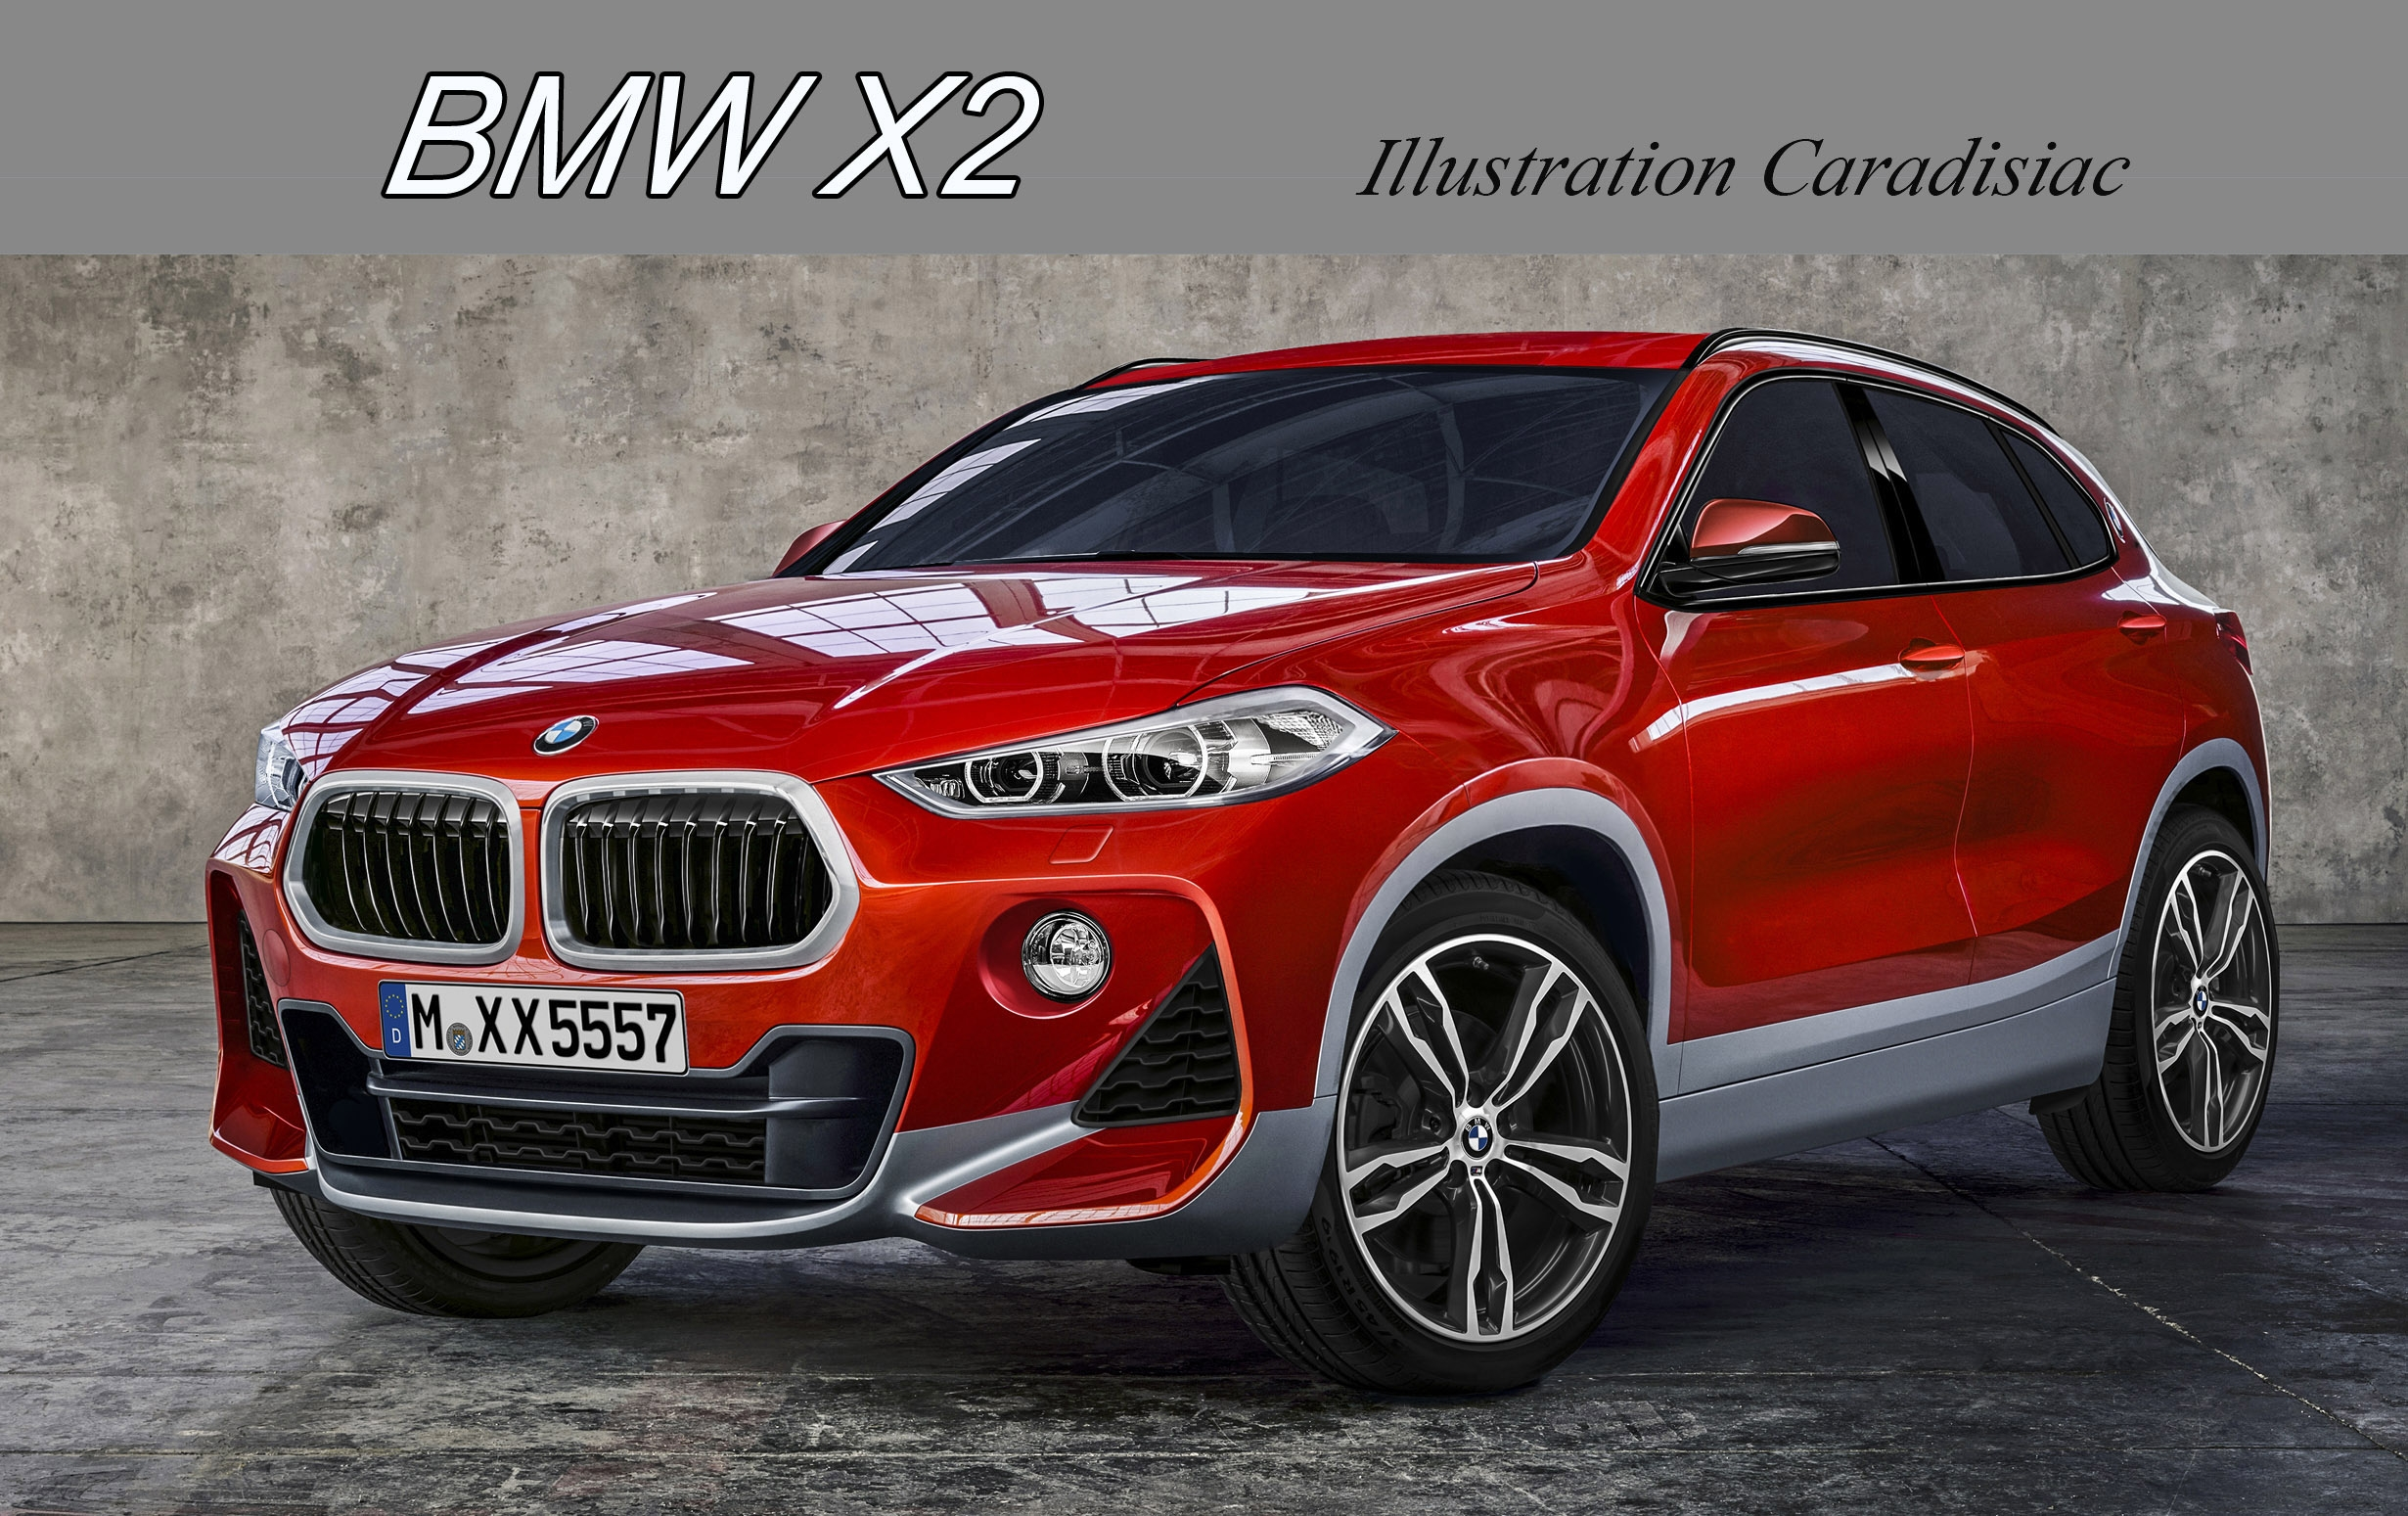 Bmw Xm5.BMW X5 Hamann E53 1 Tuning. 2017 BMW X2 Rendered ...